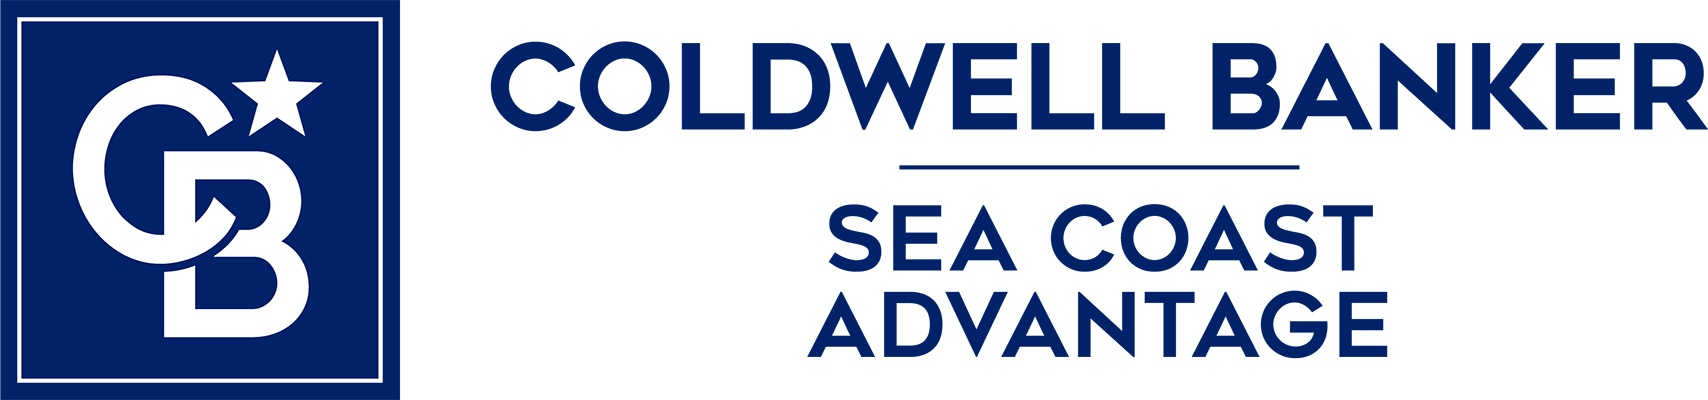 Mary Johnson - Coldwell Banker Sea Coast Advantage Realty